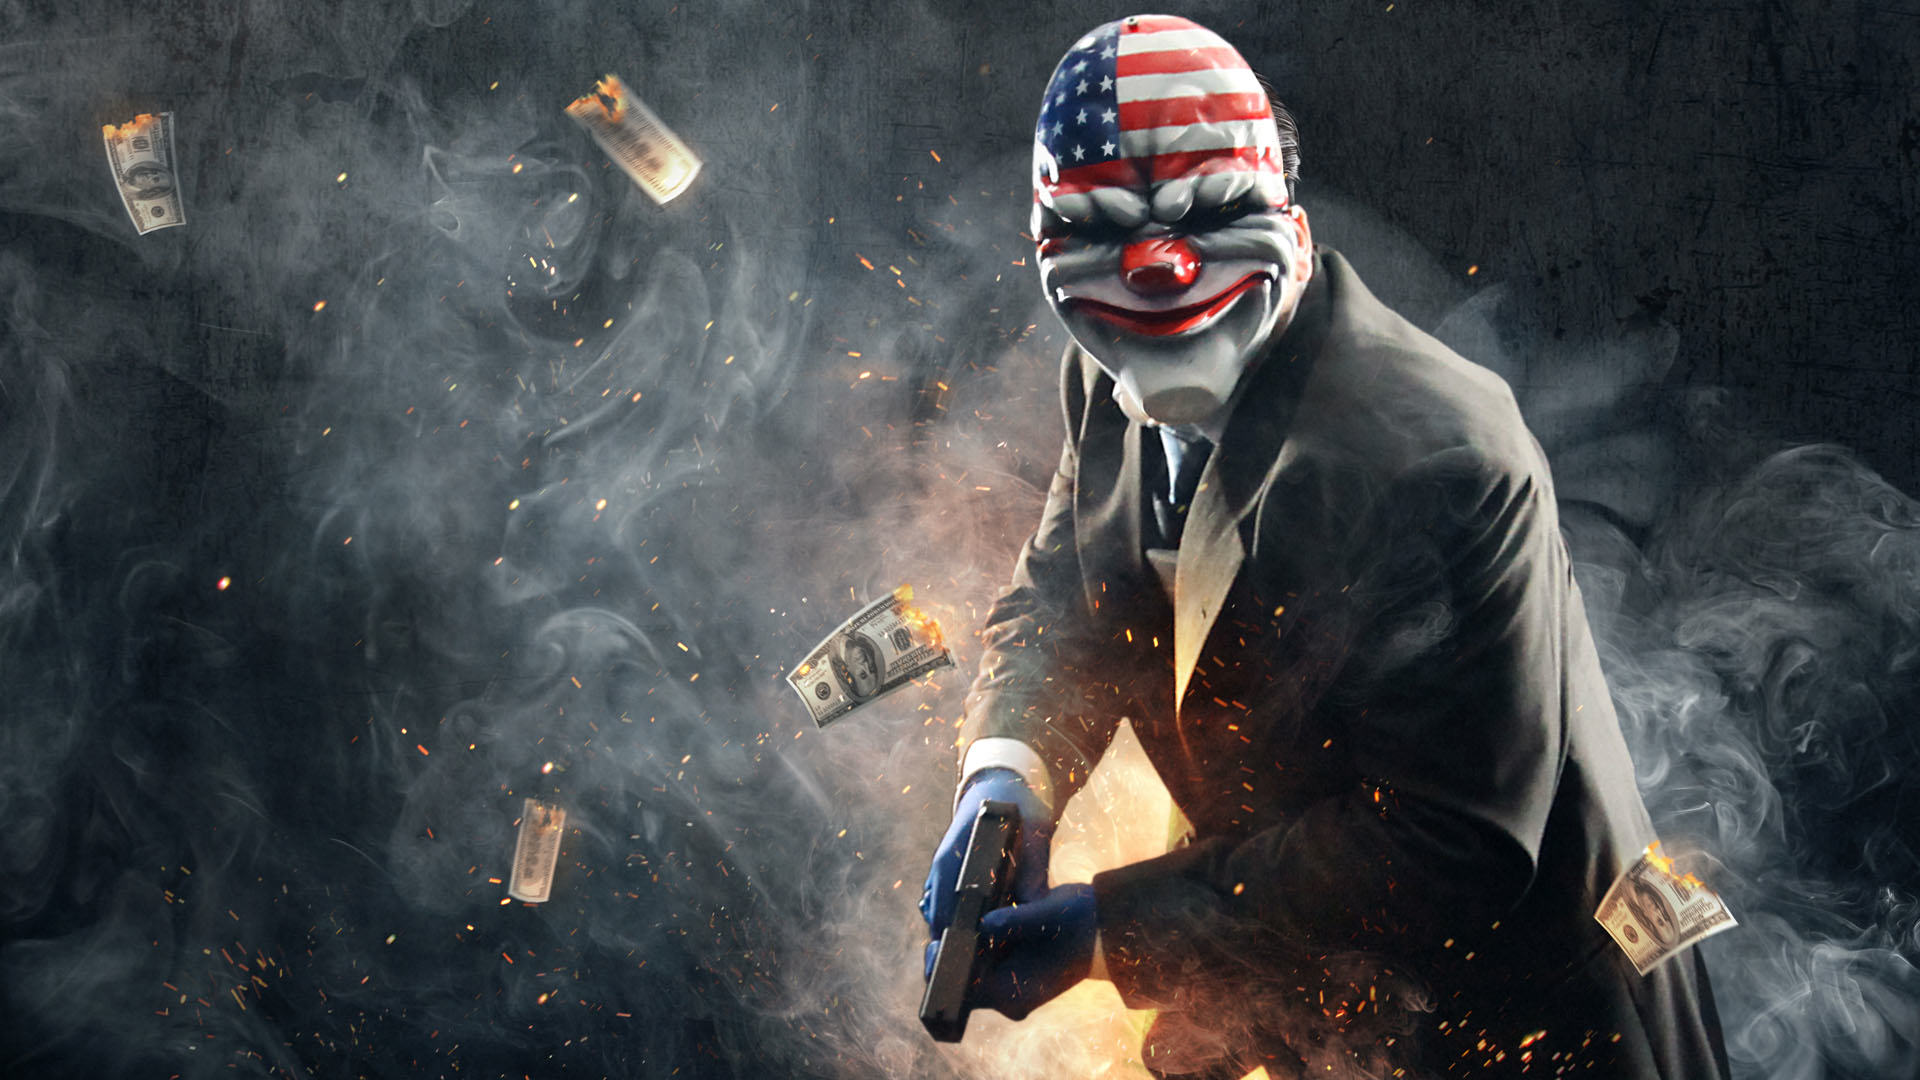 UNILAD 7aaf9c413df949a96f5934c50fef739c5cde094160022 PayDay 2 Devs Add Microtransactions And People Are Not Happy